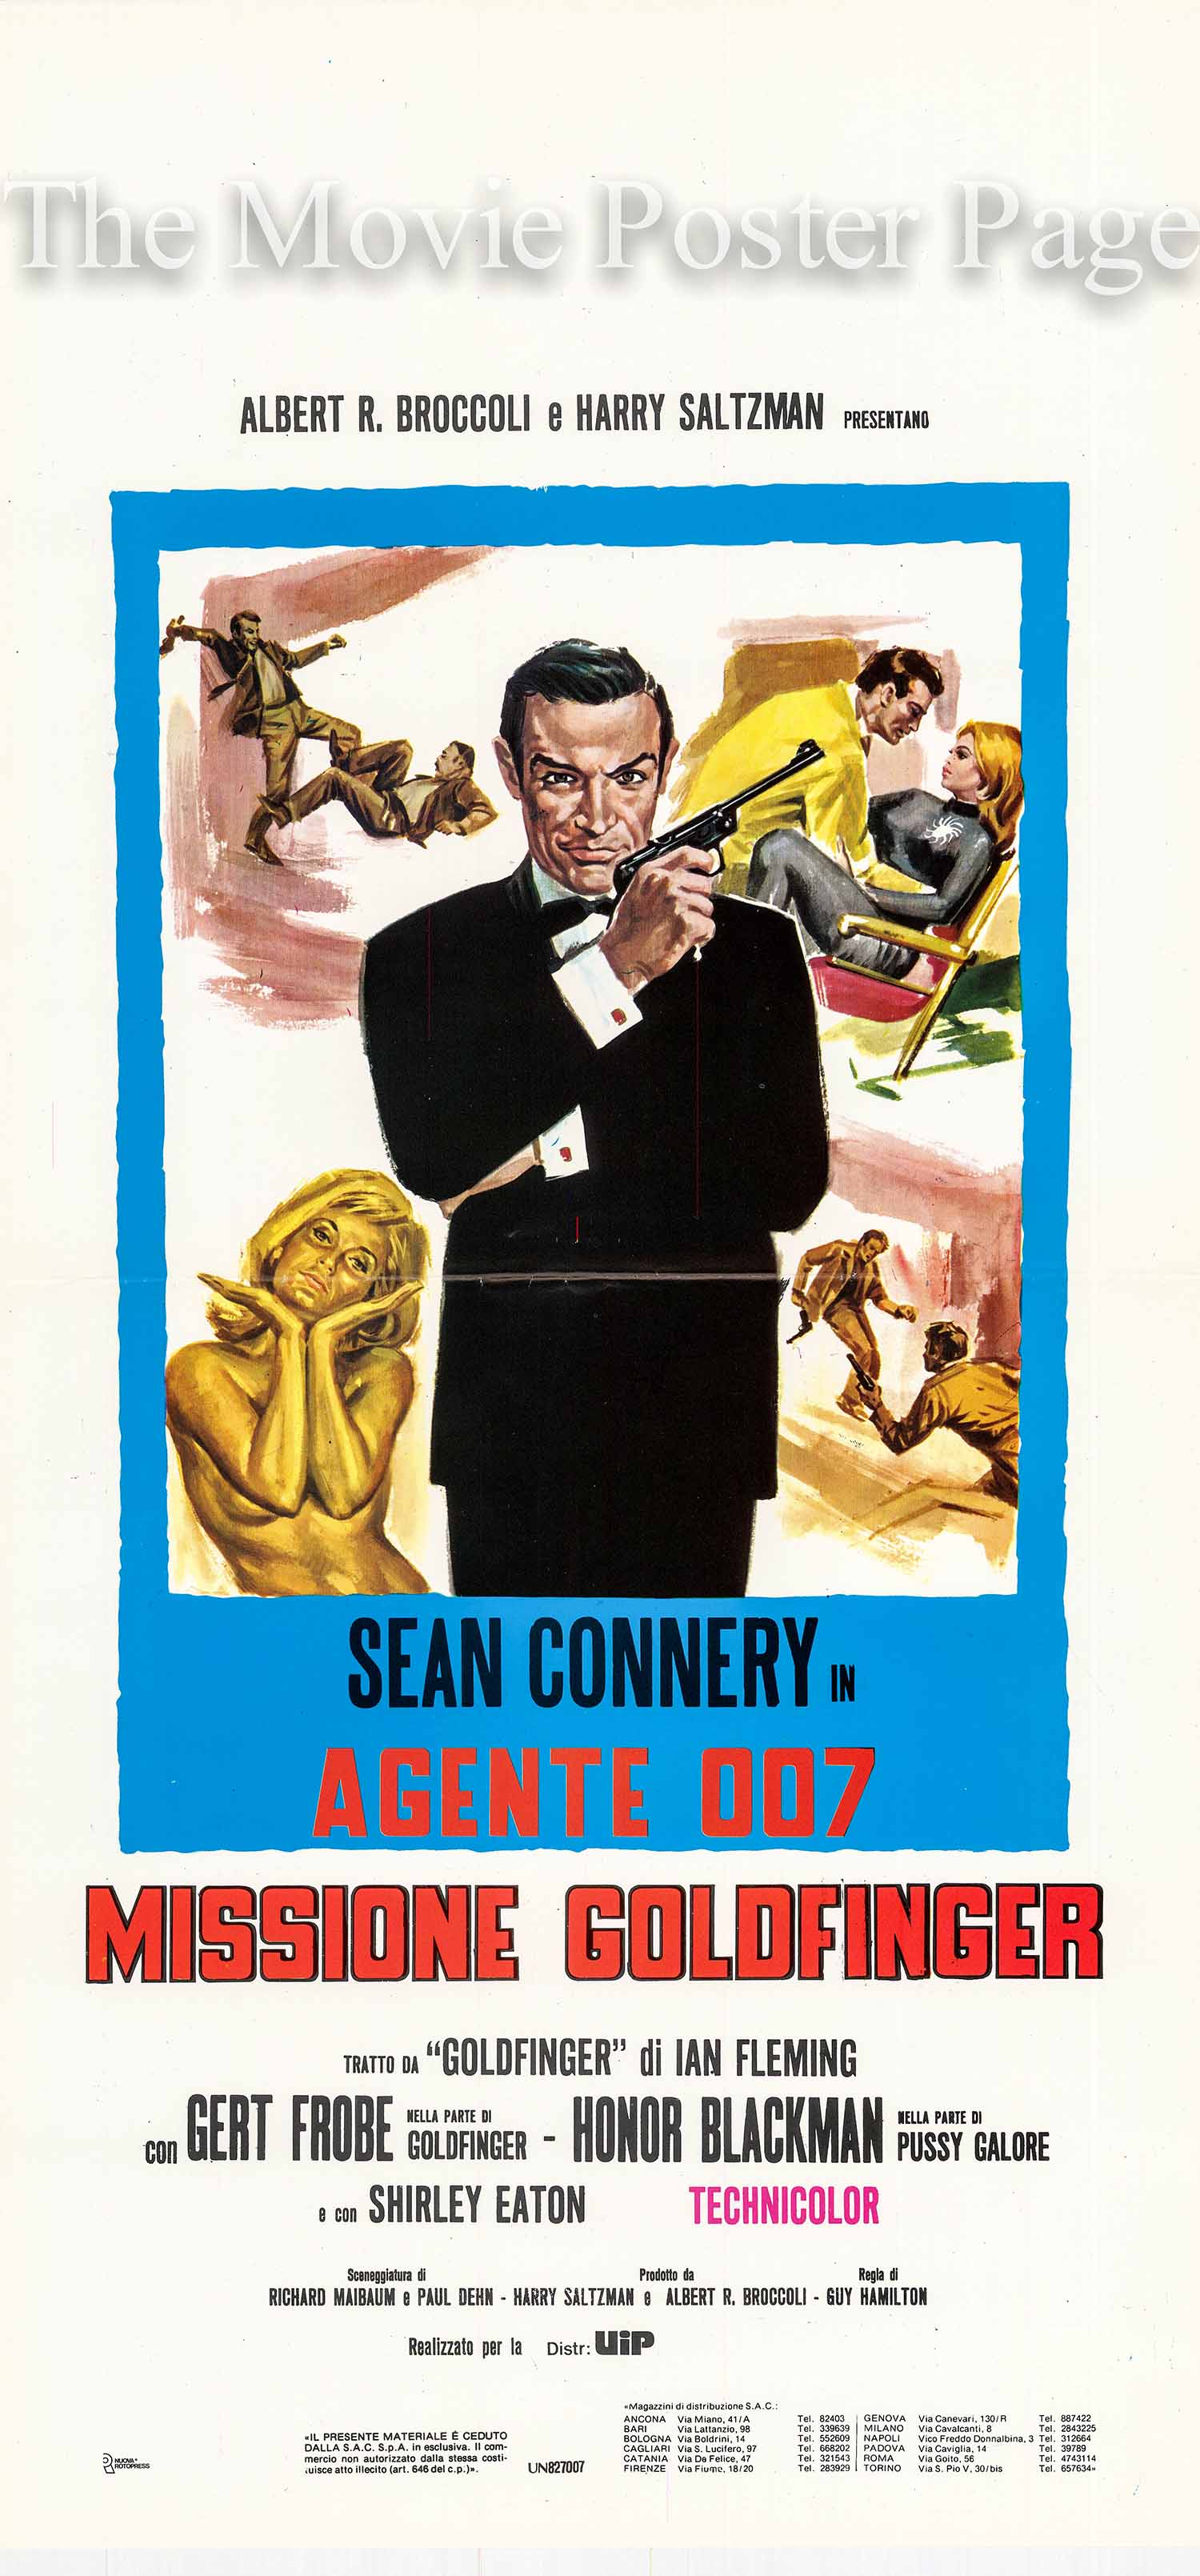 Pictured is an Italian locandina printed in the year 1983 to promote a rerelease of the 1964 Guy Hamilton film Goldfinger starring Sean Connery as James Bond.